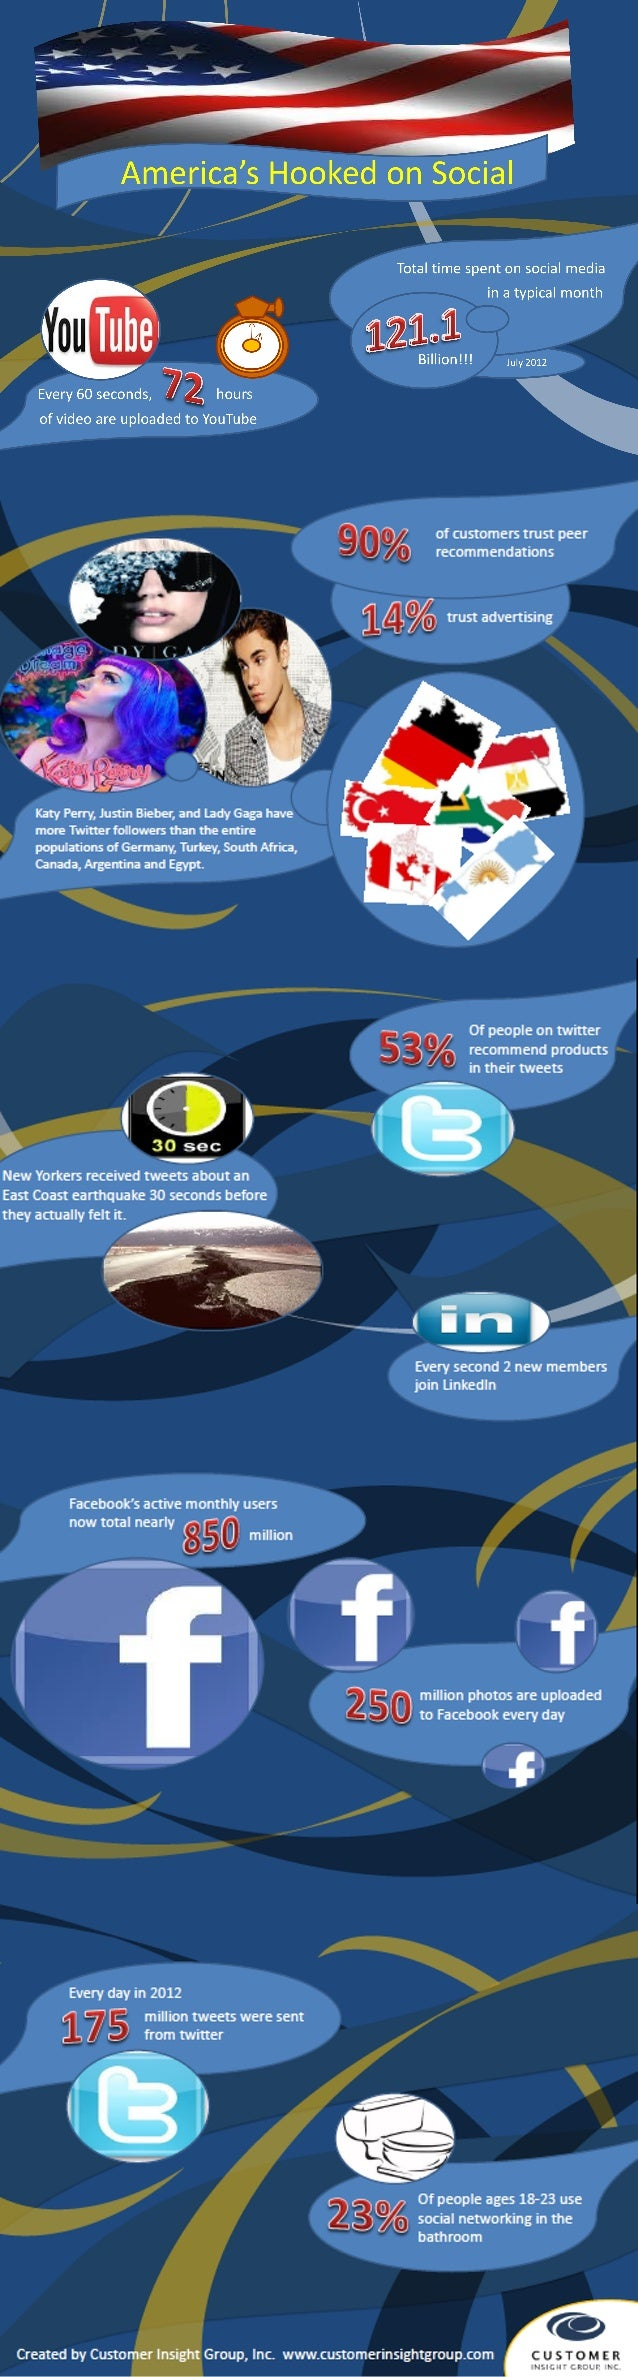 Trends in Social Media Impacting Business (Infographic)